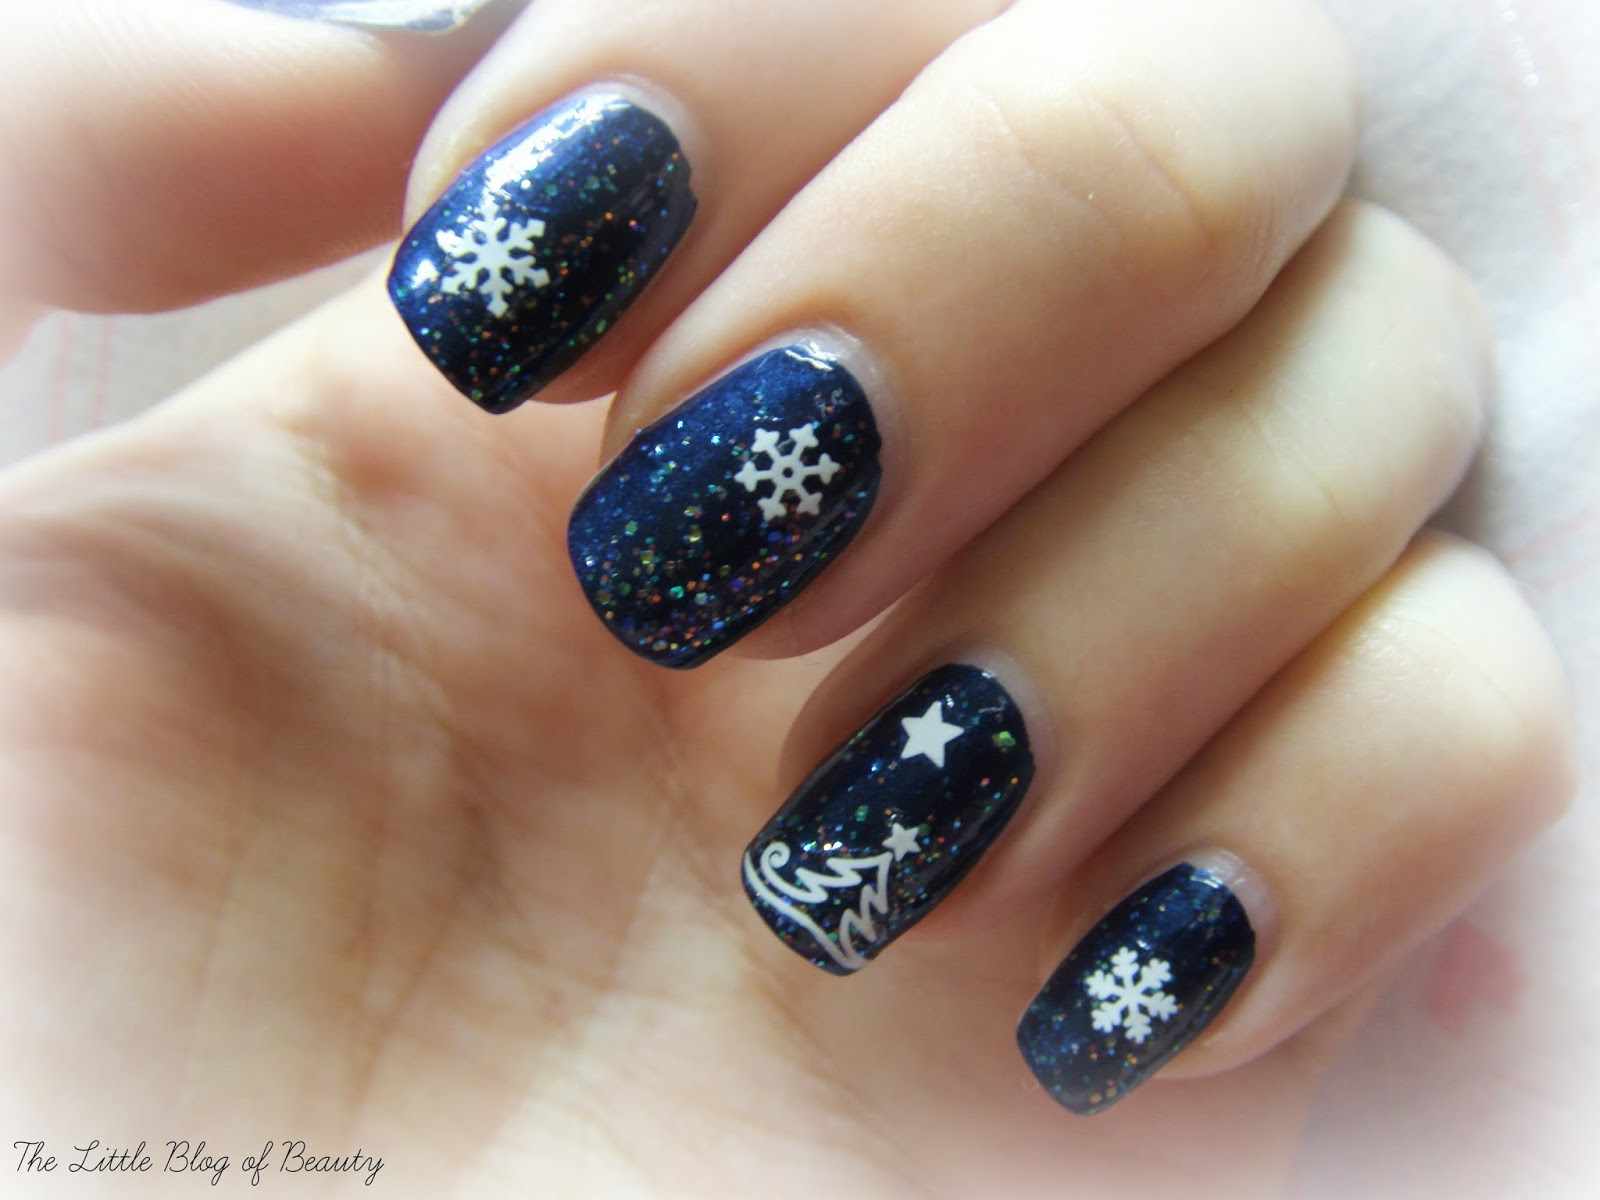 Christmas nail art - Snow globe nails night